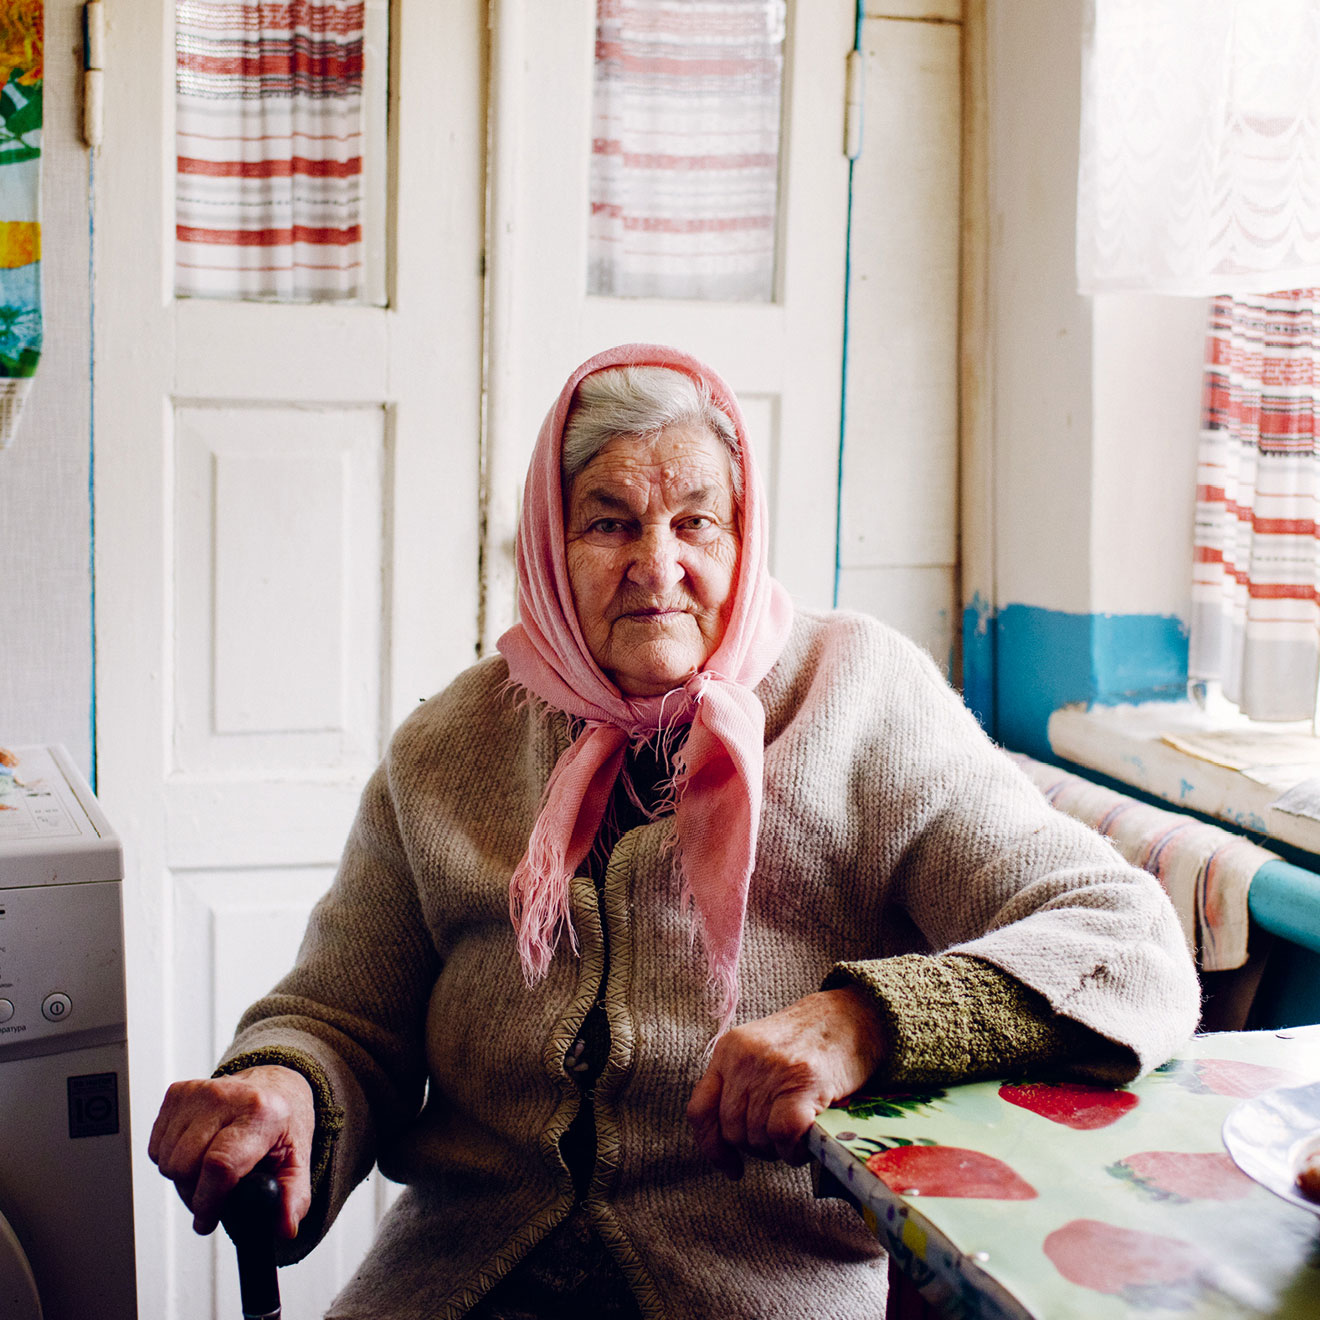 A photograph by Chris Nunn of an elderly woman in Ukraine. From Weapons of Reason: The New Old